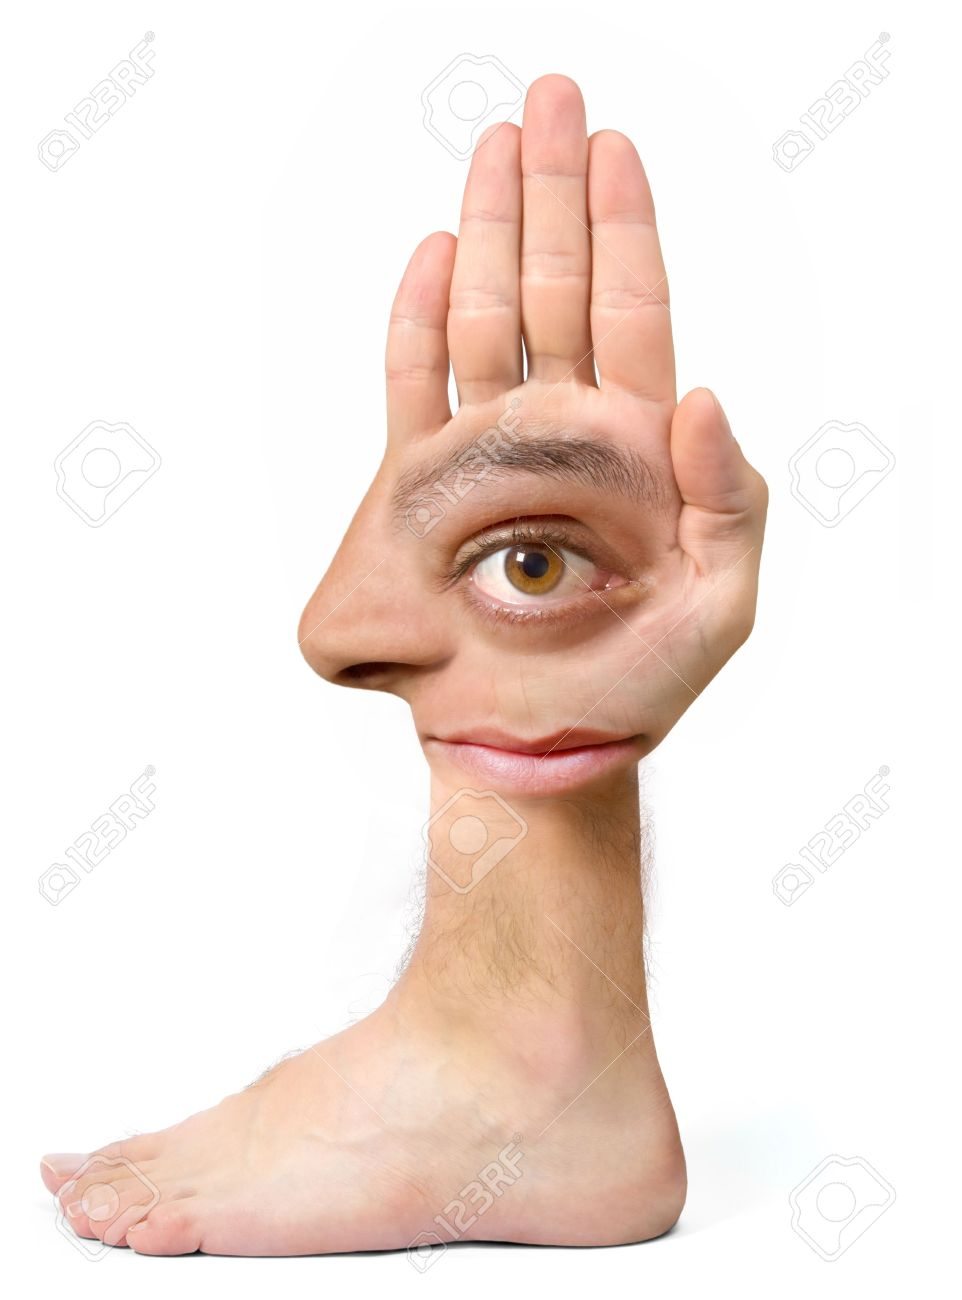 Very ugly face and comical create with the hand with an eye, an ear, the nose, the mouth and a foot Stock Photo - 1933377